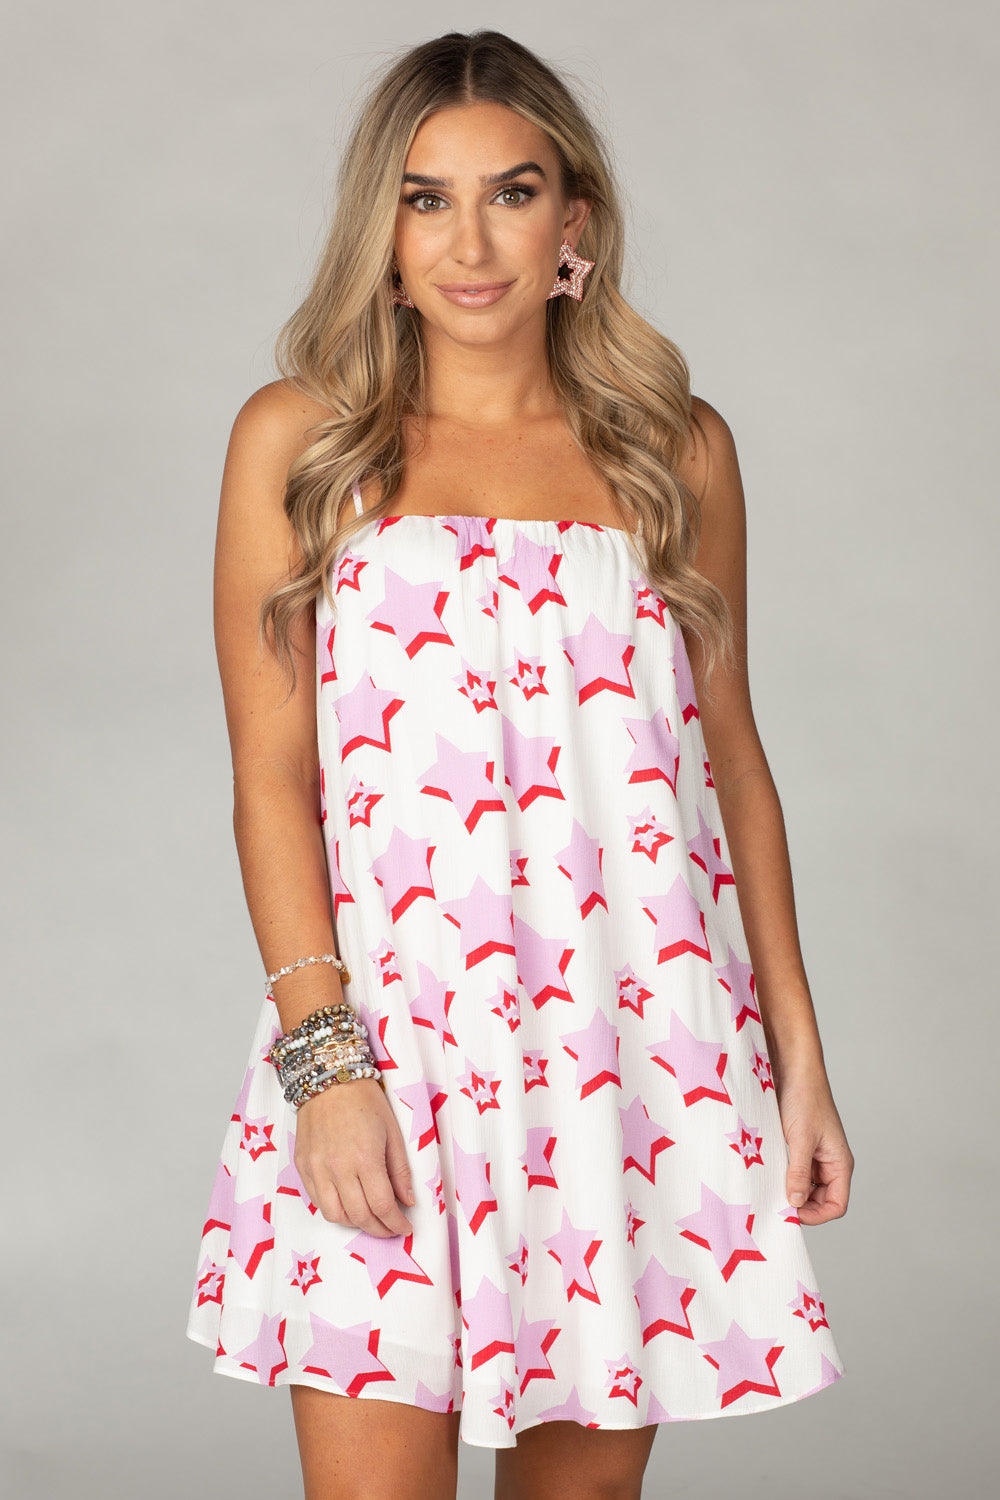 Buddy Love Sandra Pink Star Dress